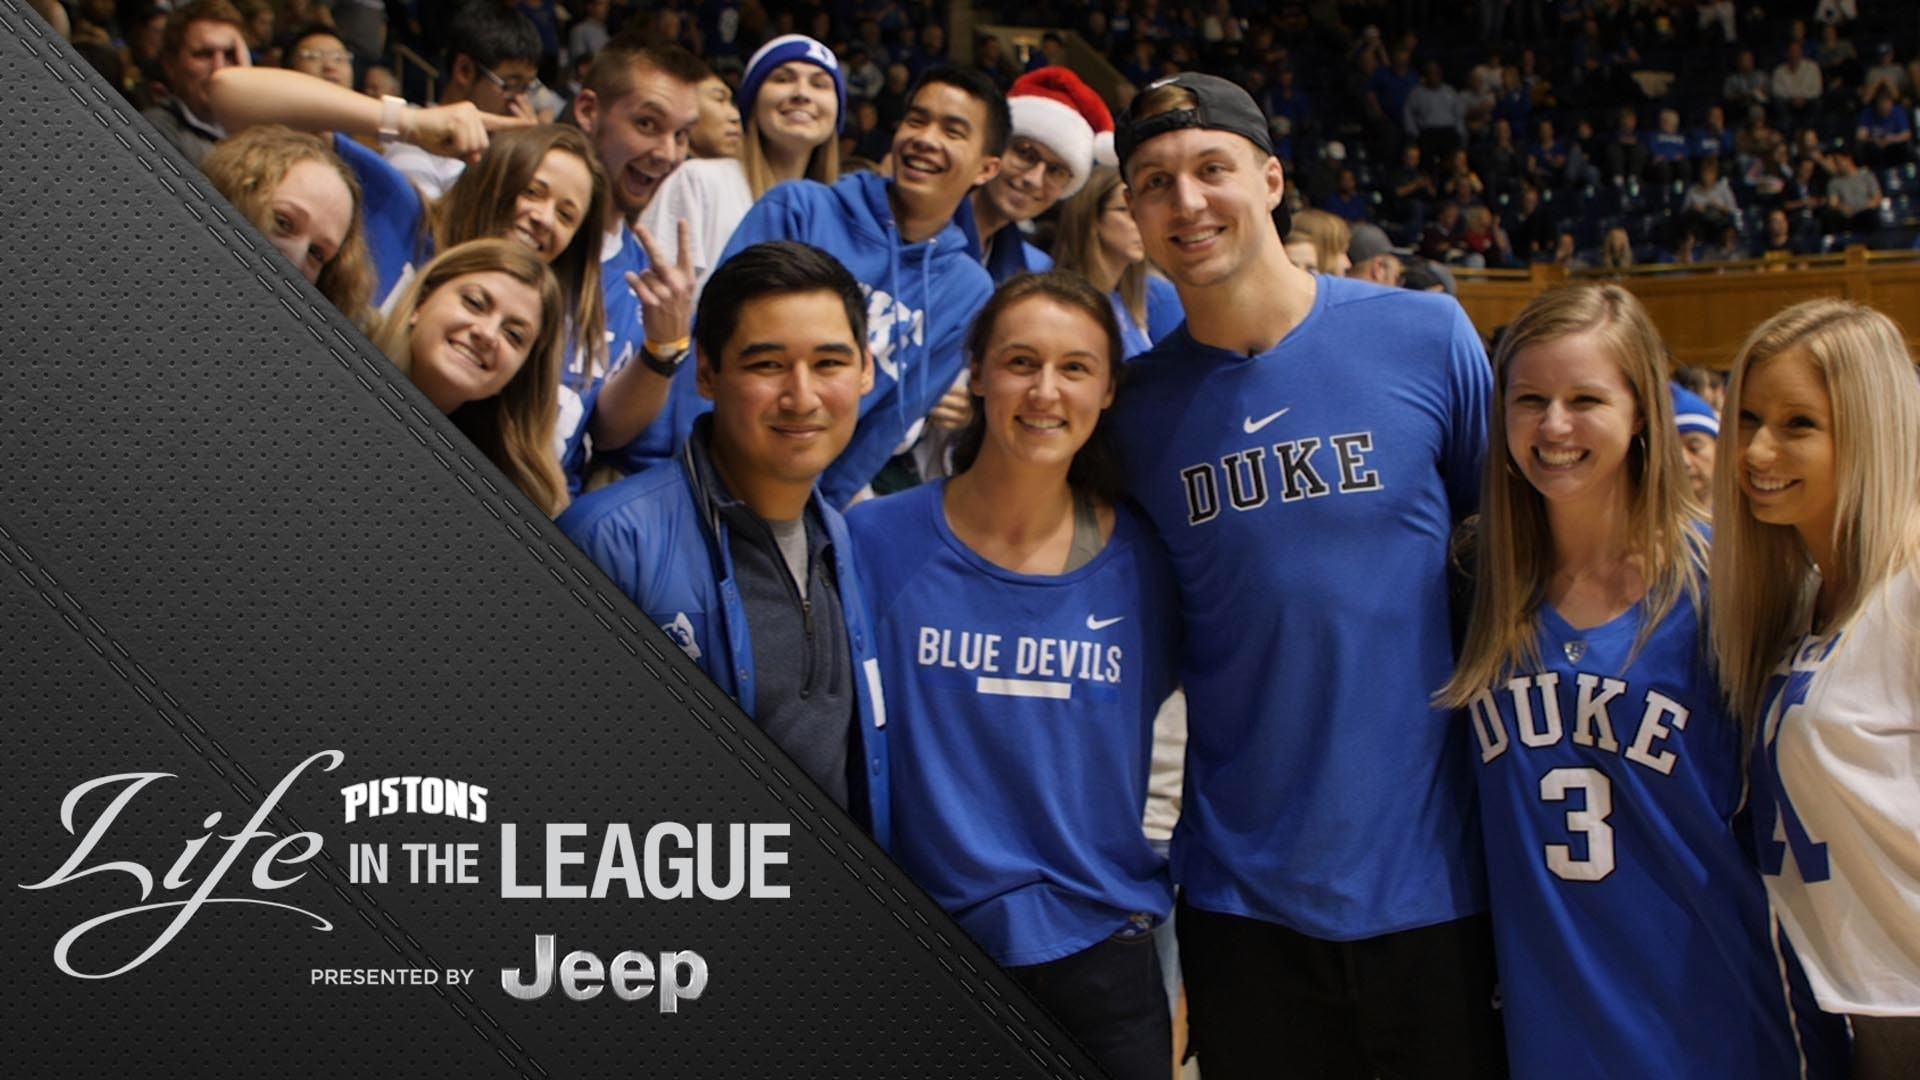 Life in the League, presented by Jeep: Luke visits Duke